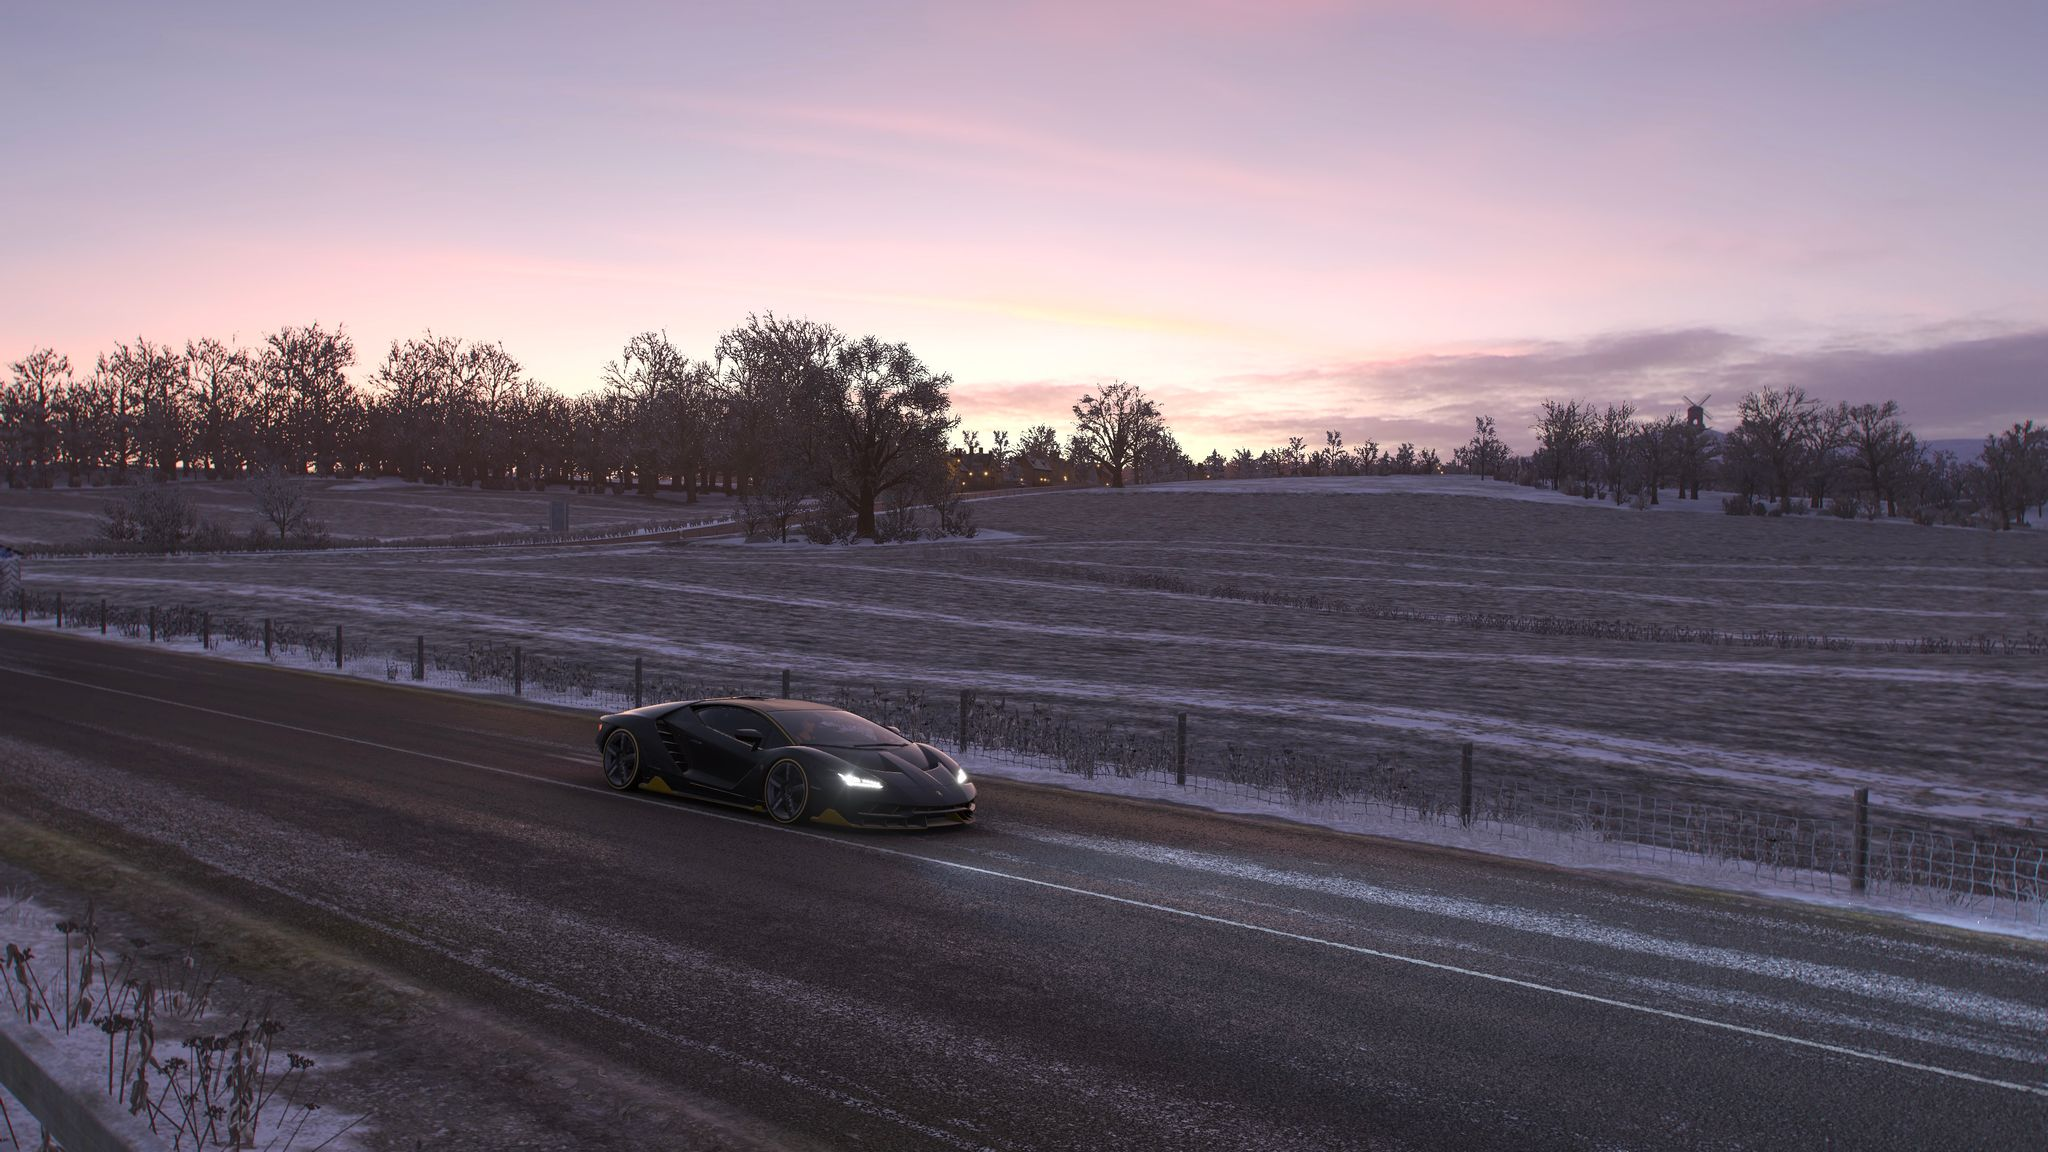 A screenshot from Forza Horizon 4. It's taken just after sunset, with a Lamborghini in the foreground on the road looking back towards where the sun has set. It's winter, and the ground and trees are covered in snow.